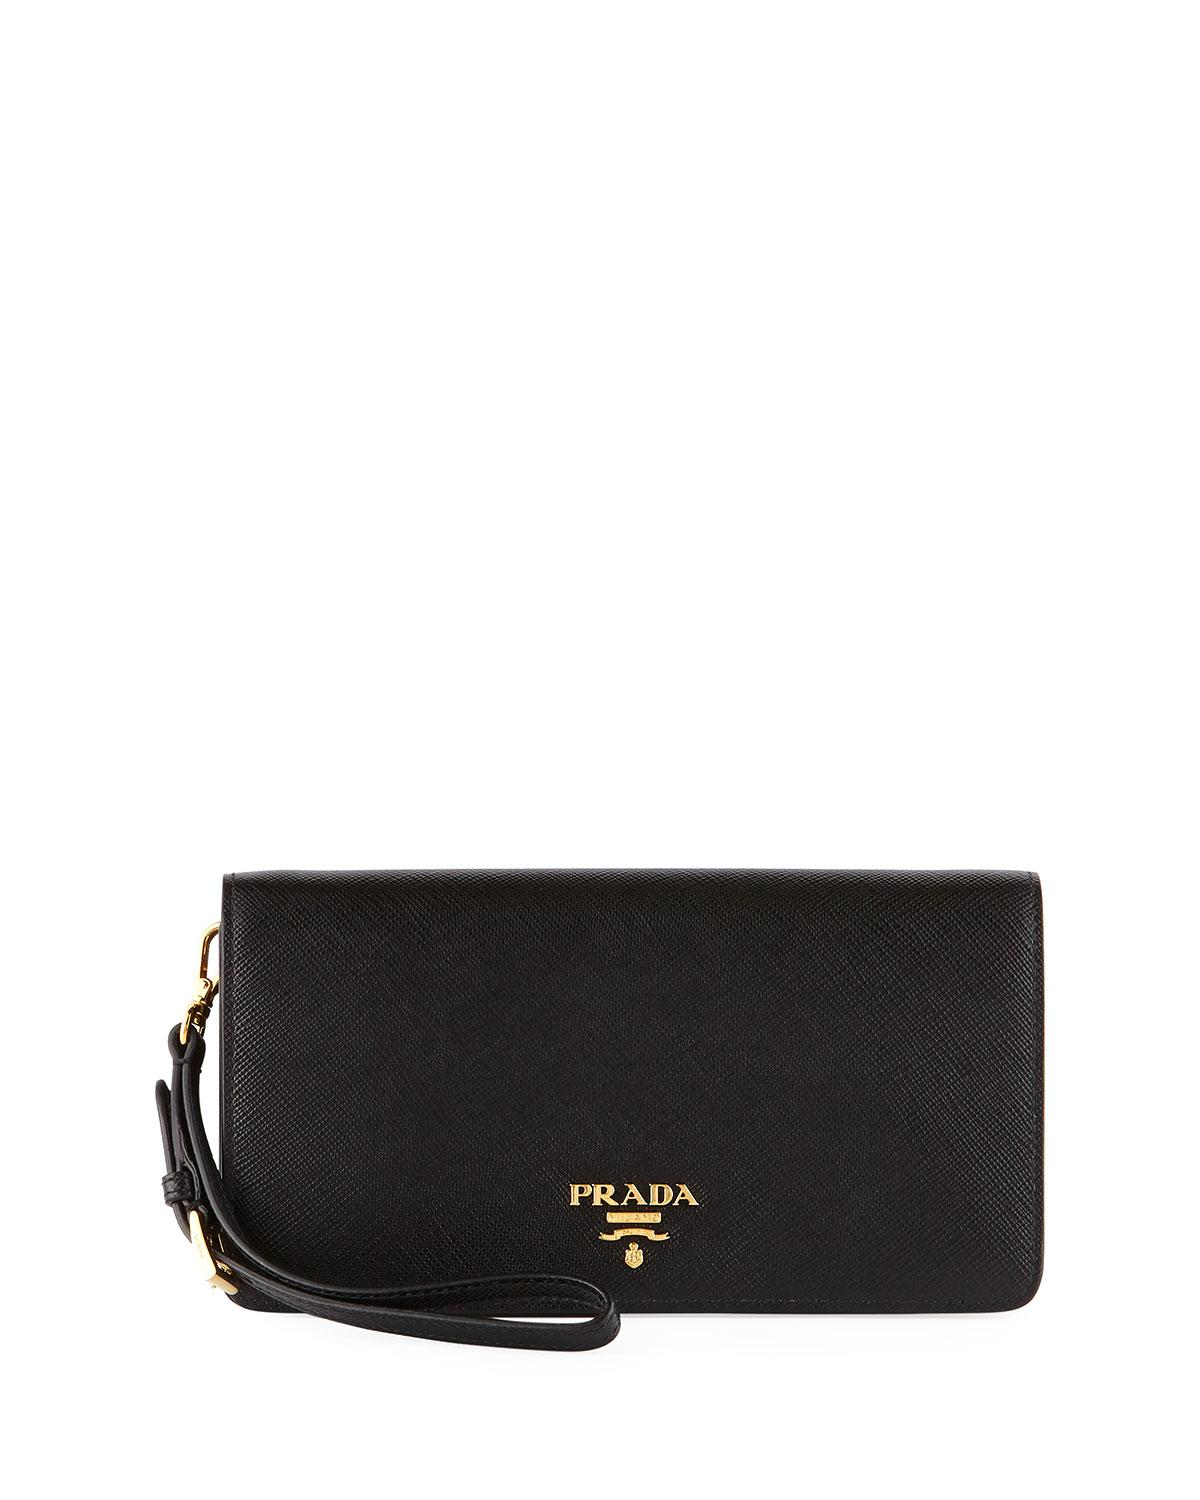 821dad759af0 Prada Saffiano Flap Phone Wristlet Wallet W/ Crossbody Strap in ...